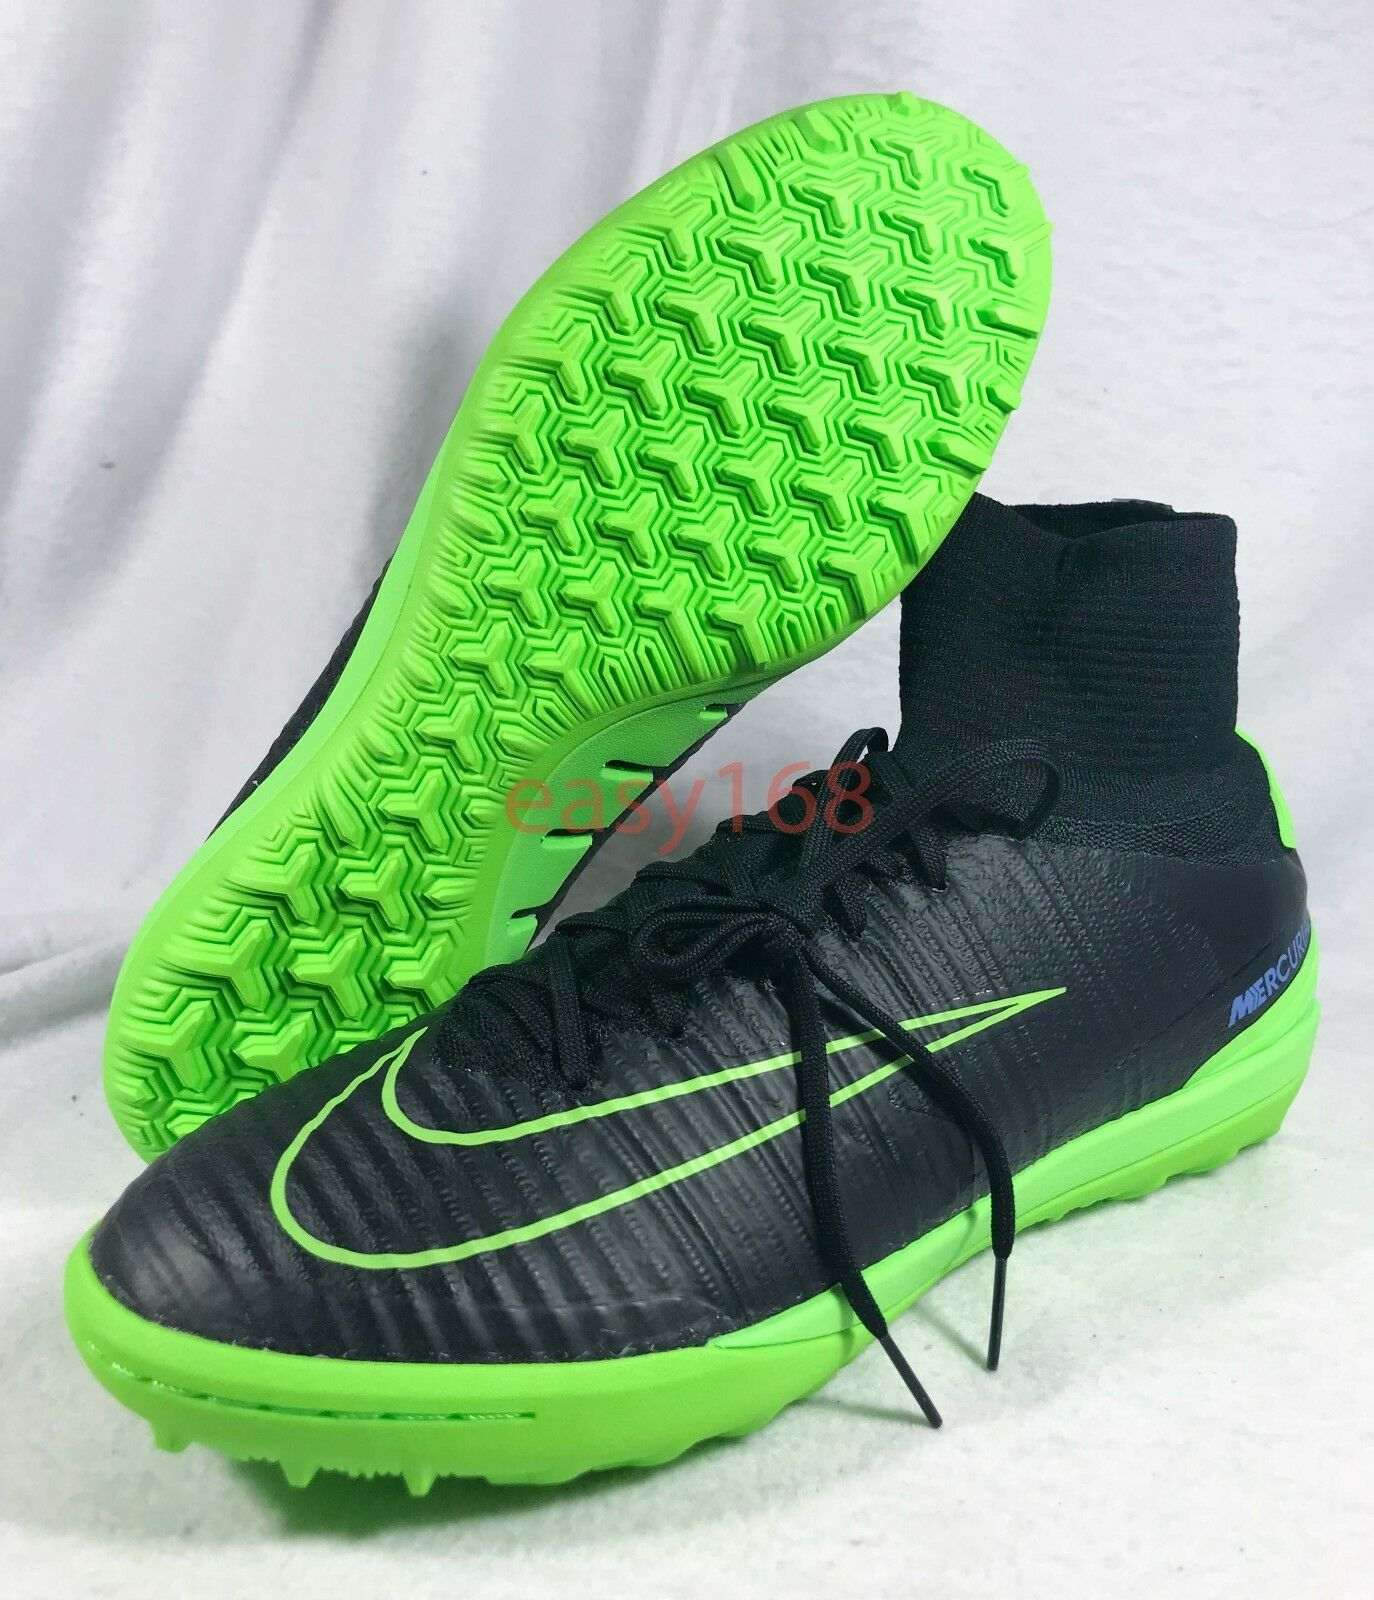 New Nike MercurialX Proximo II Sz 10.5 soccer 831977 Turf Green 44.5 Black shoes